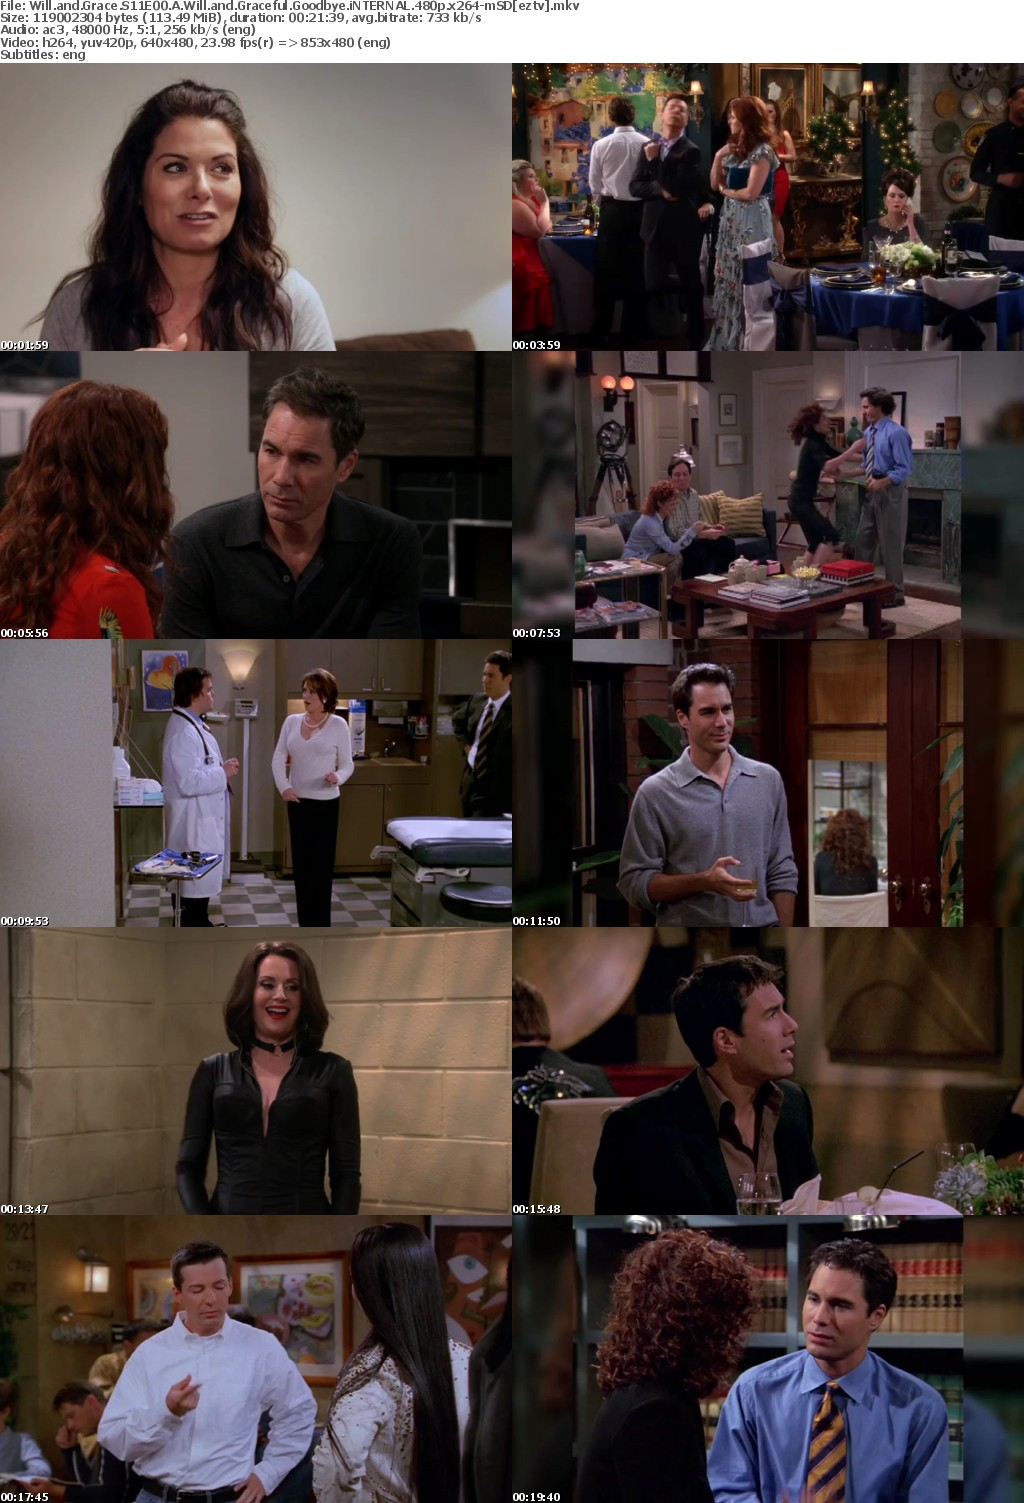 Will and Grace S11E00 A Will and Graceful Goodbye iNTERNAL 480p x264-mSD